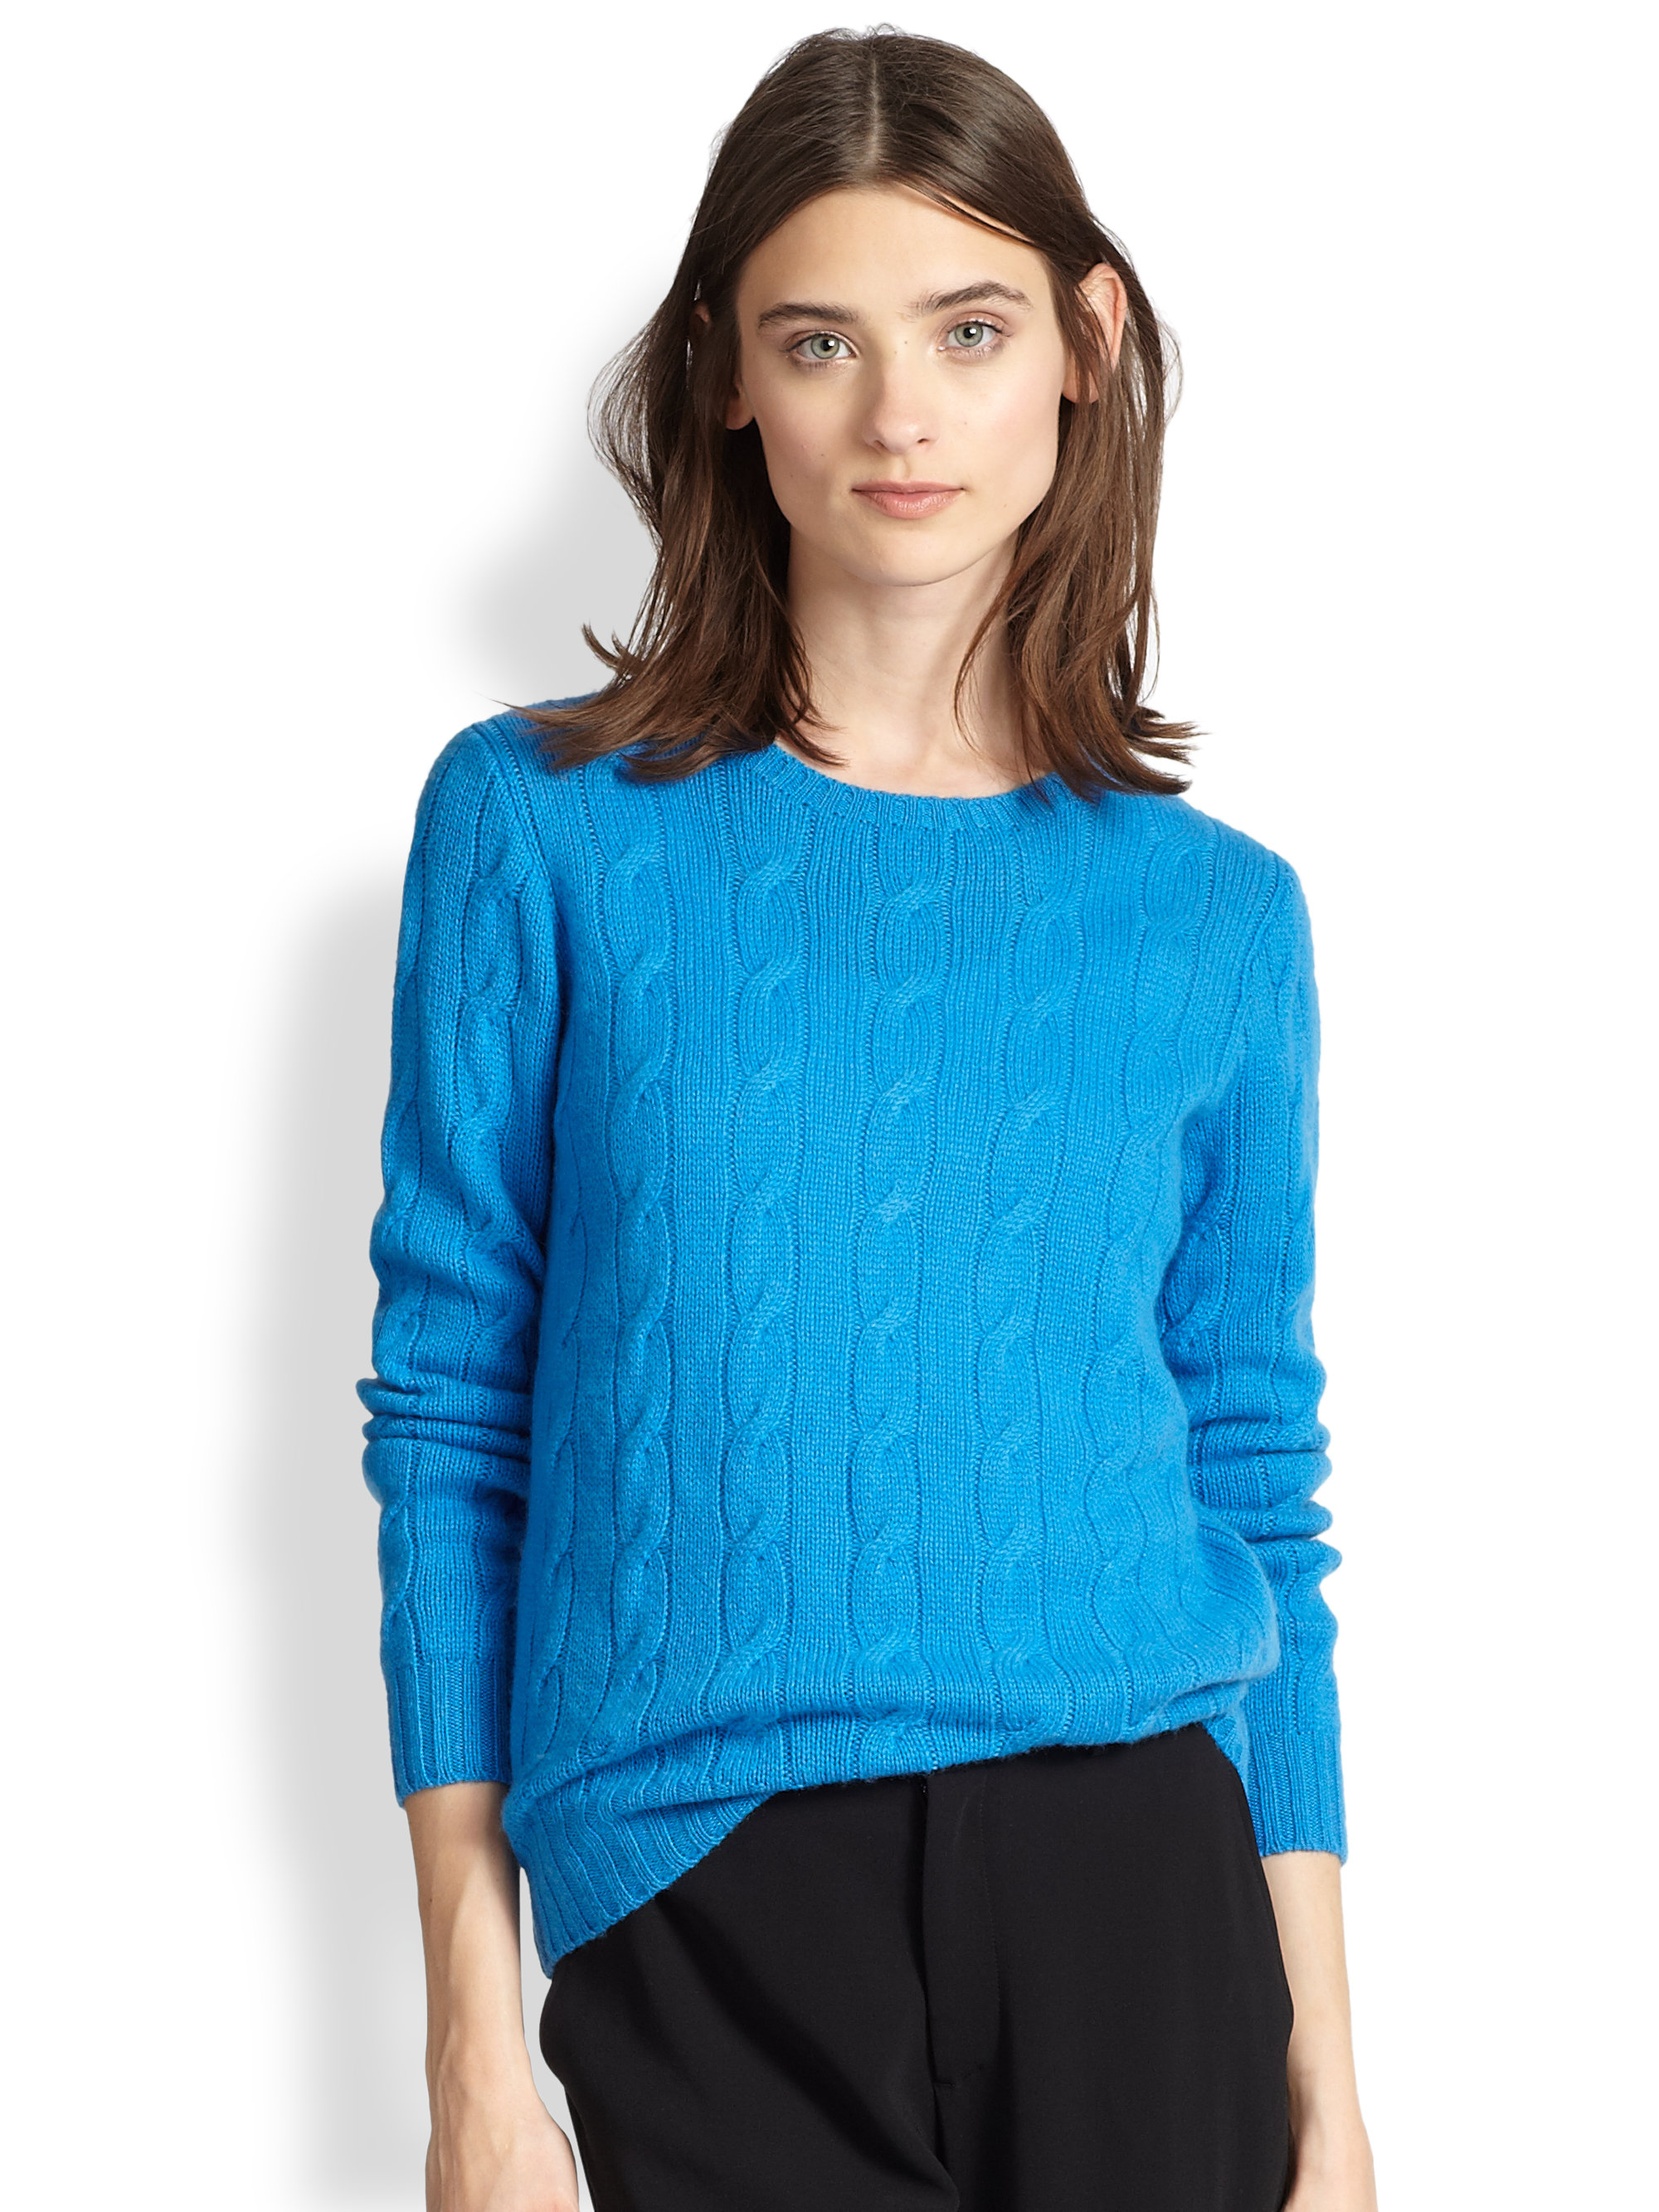 Ralph lauren black label Cable-knit Cashmere Sweater in Blue | Lyst